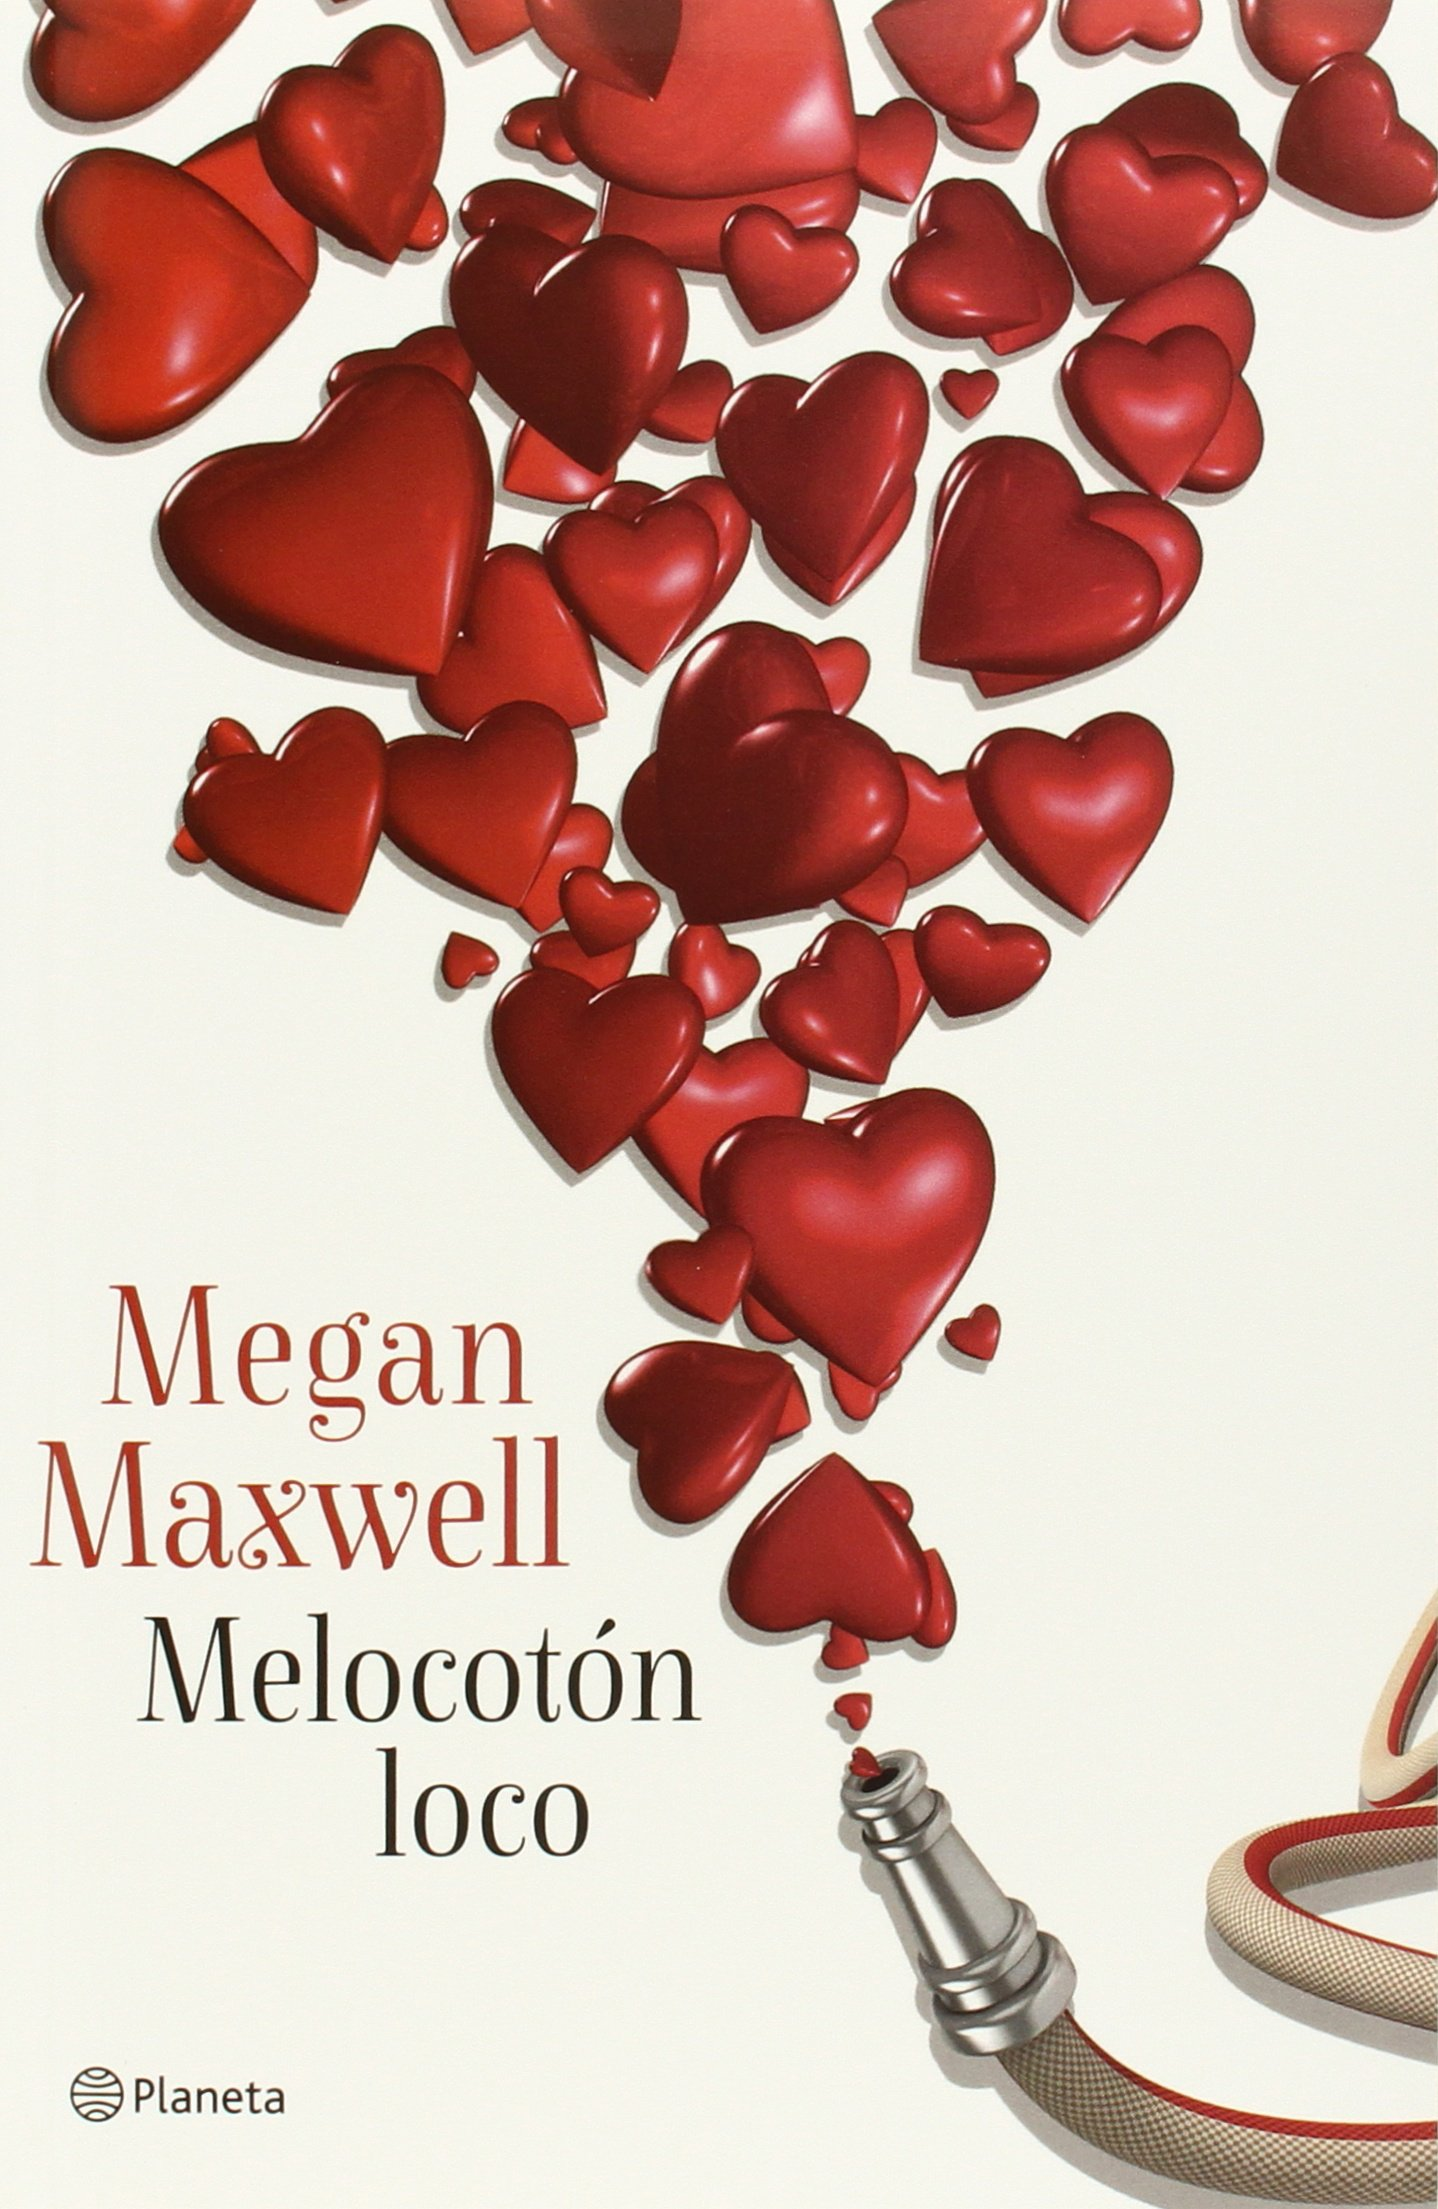 Melocotón loco (Spanish Edition): Megan Maxwell: 9786070723162: Amazon.com: Books